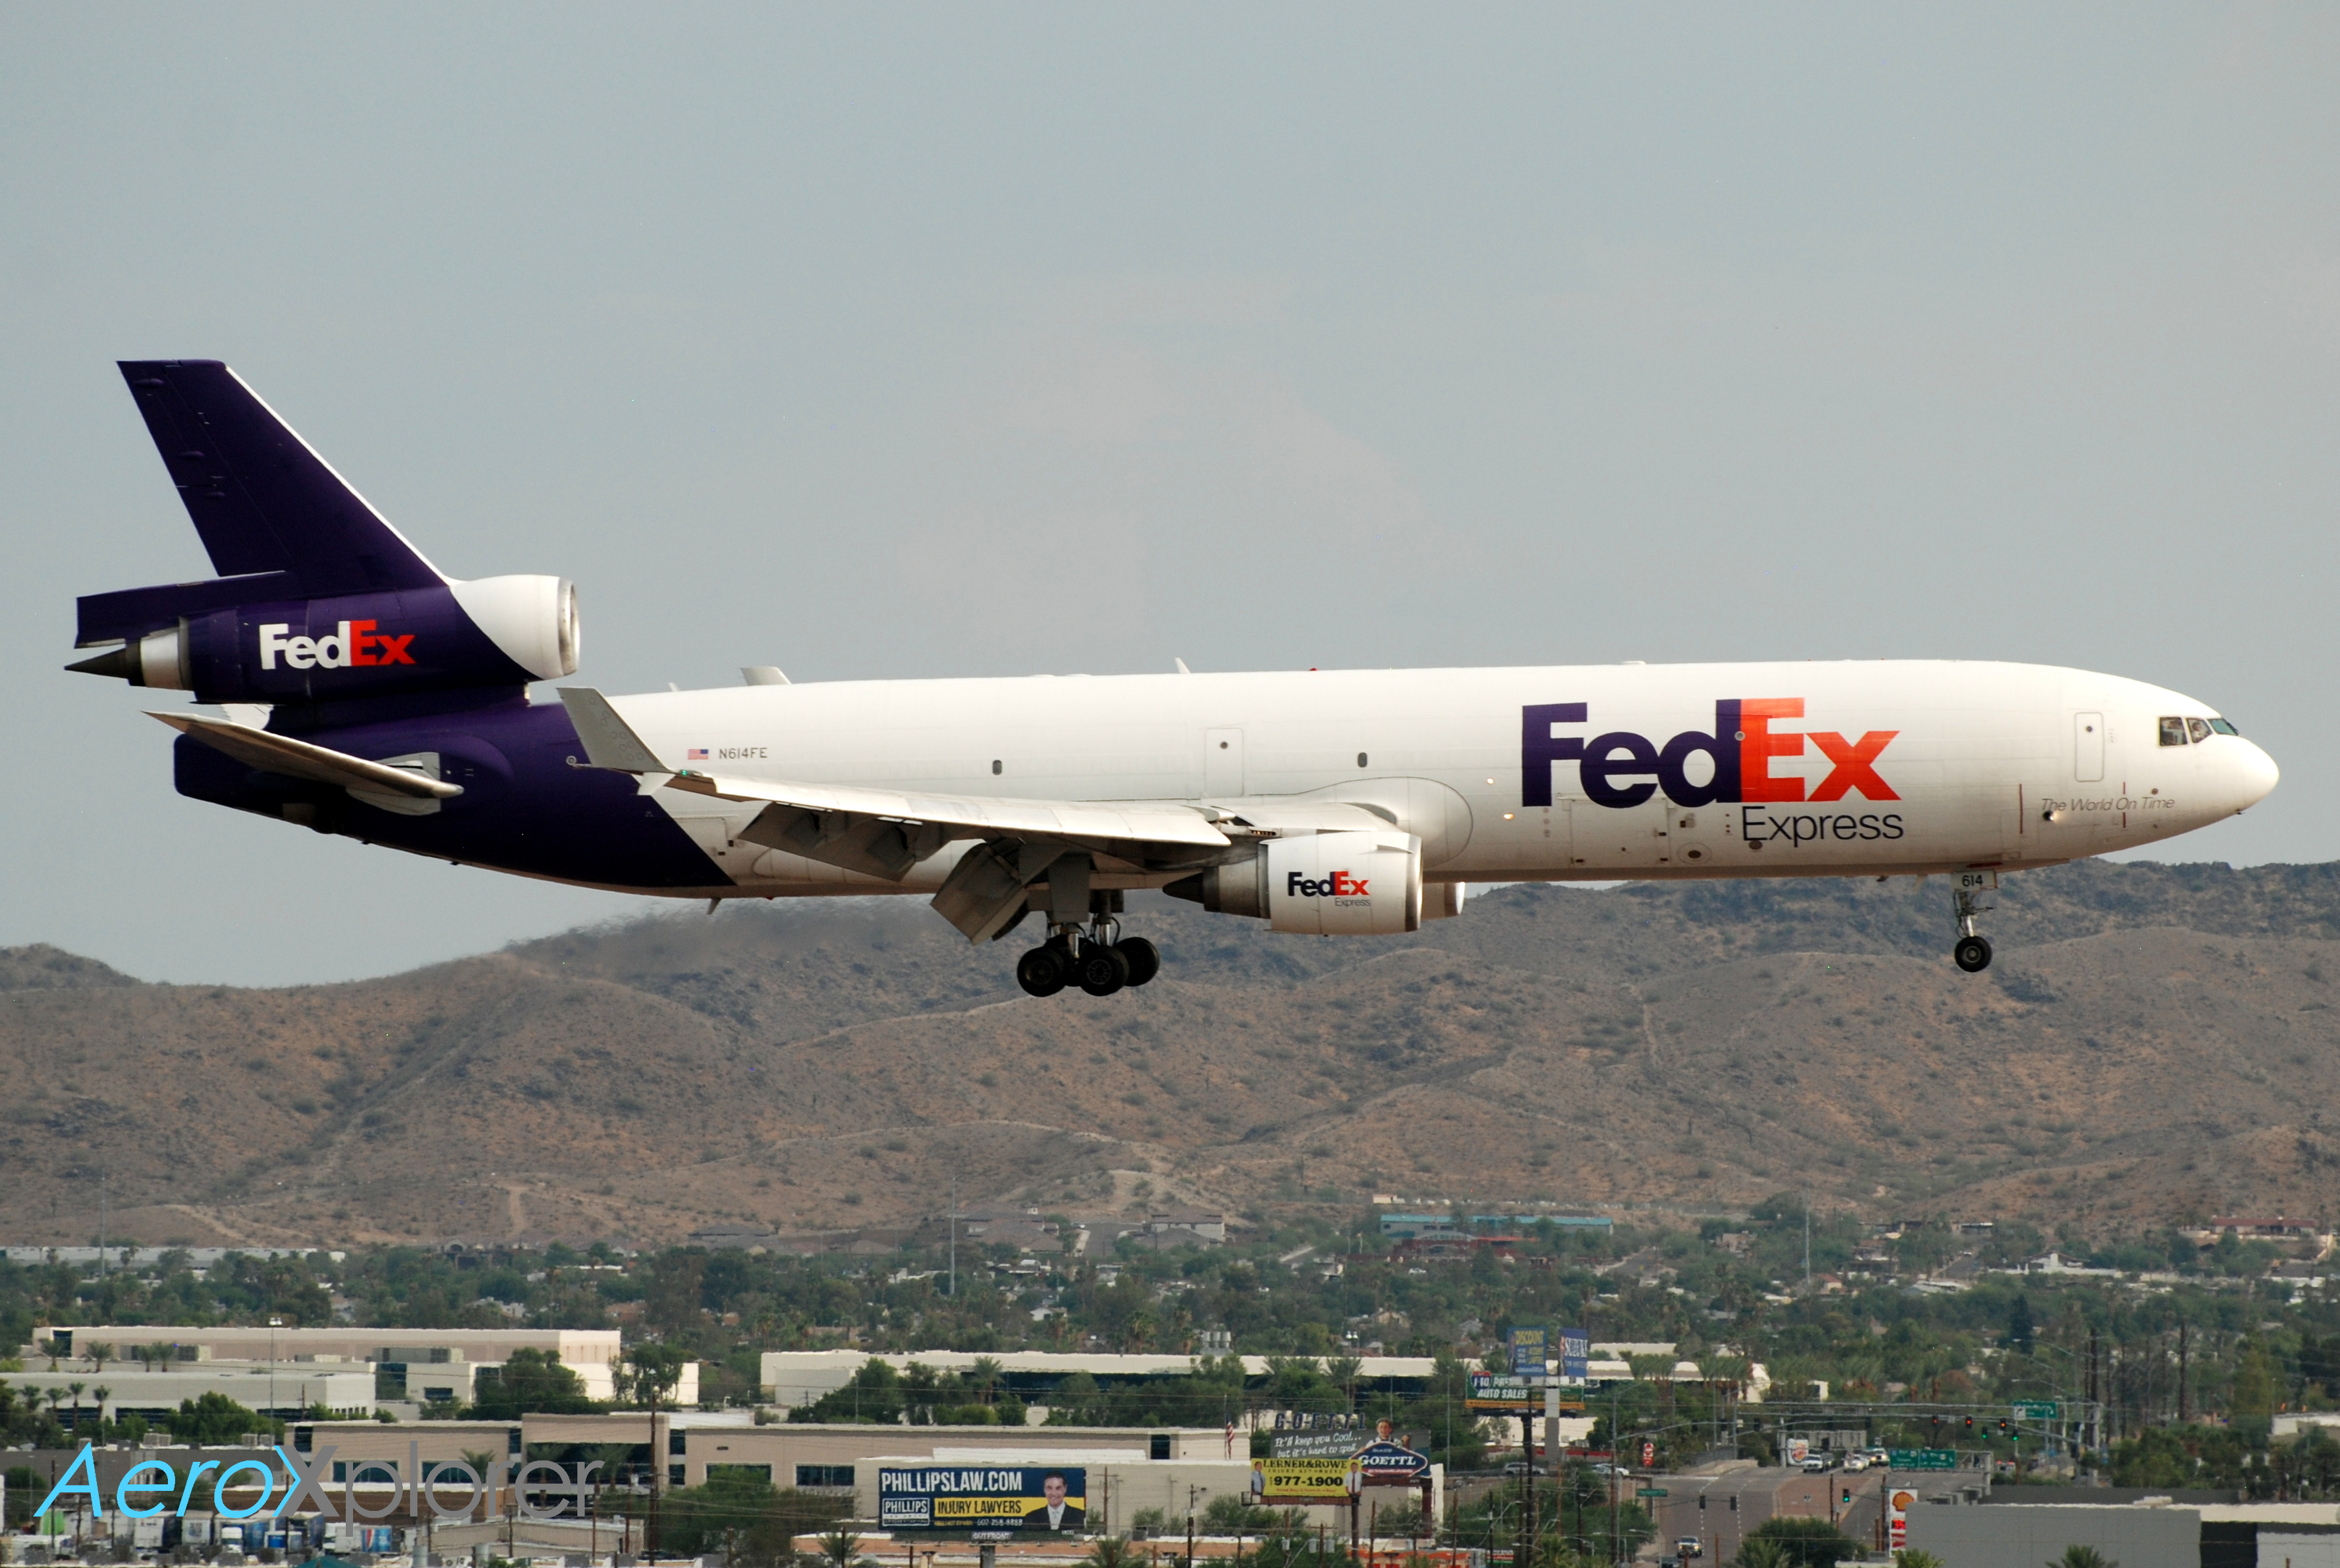 Photo of N614FE - FedEx McDonnell Douglas MD-11F at PHX